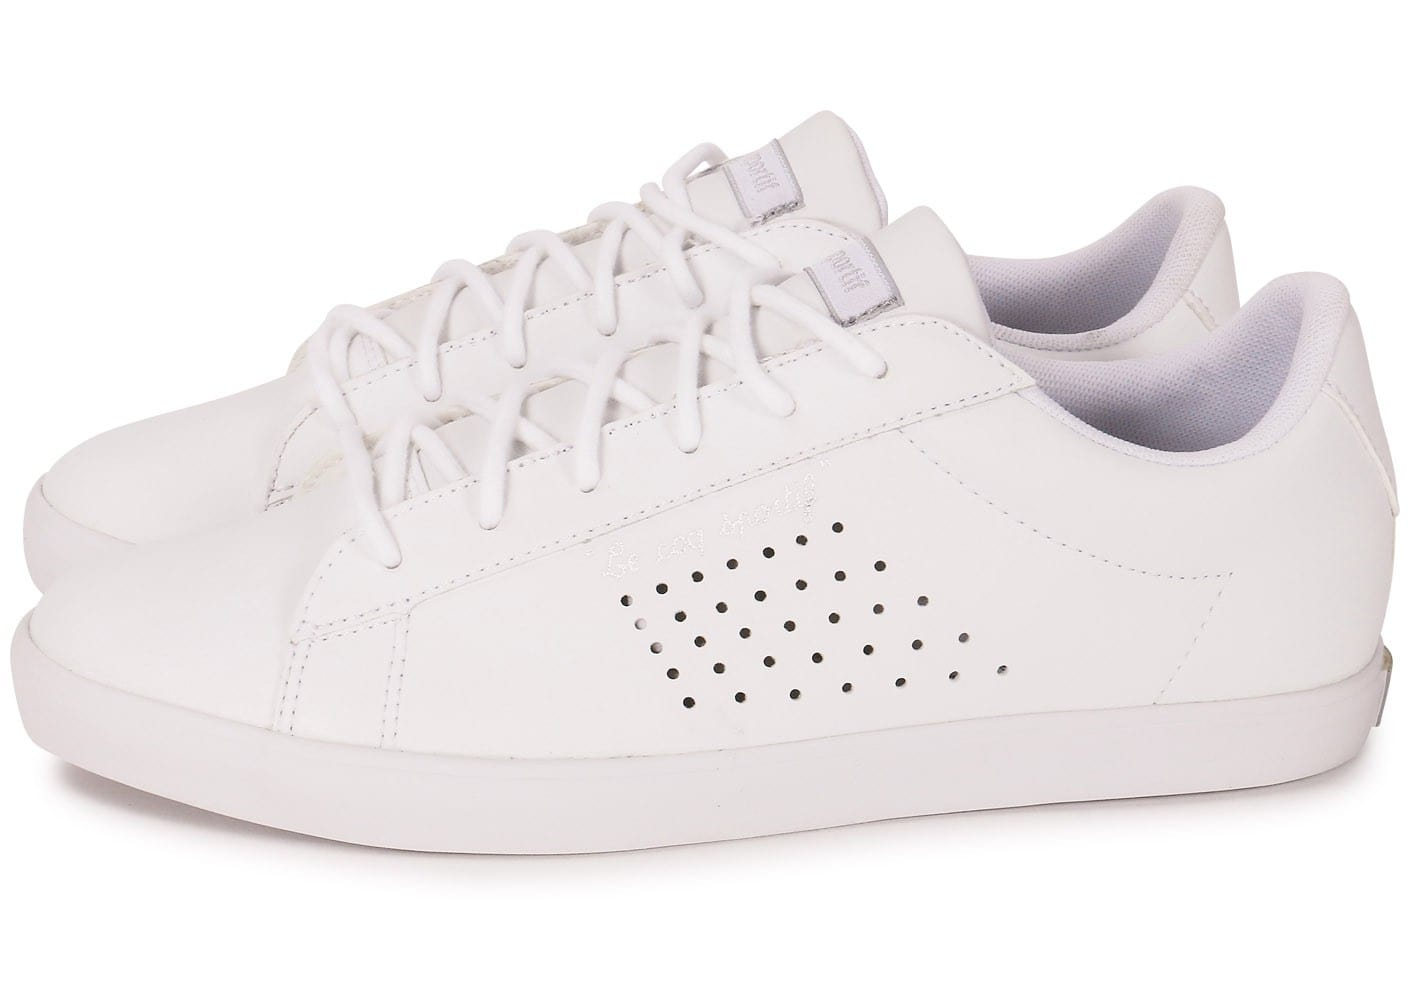 Chaussures Le Coq sportif blanches Sportives homme wu9dLs